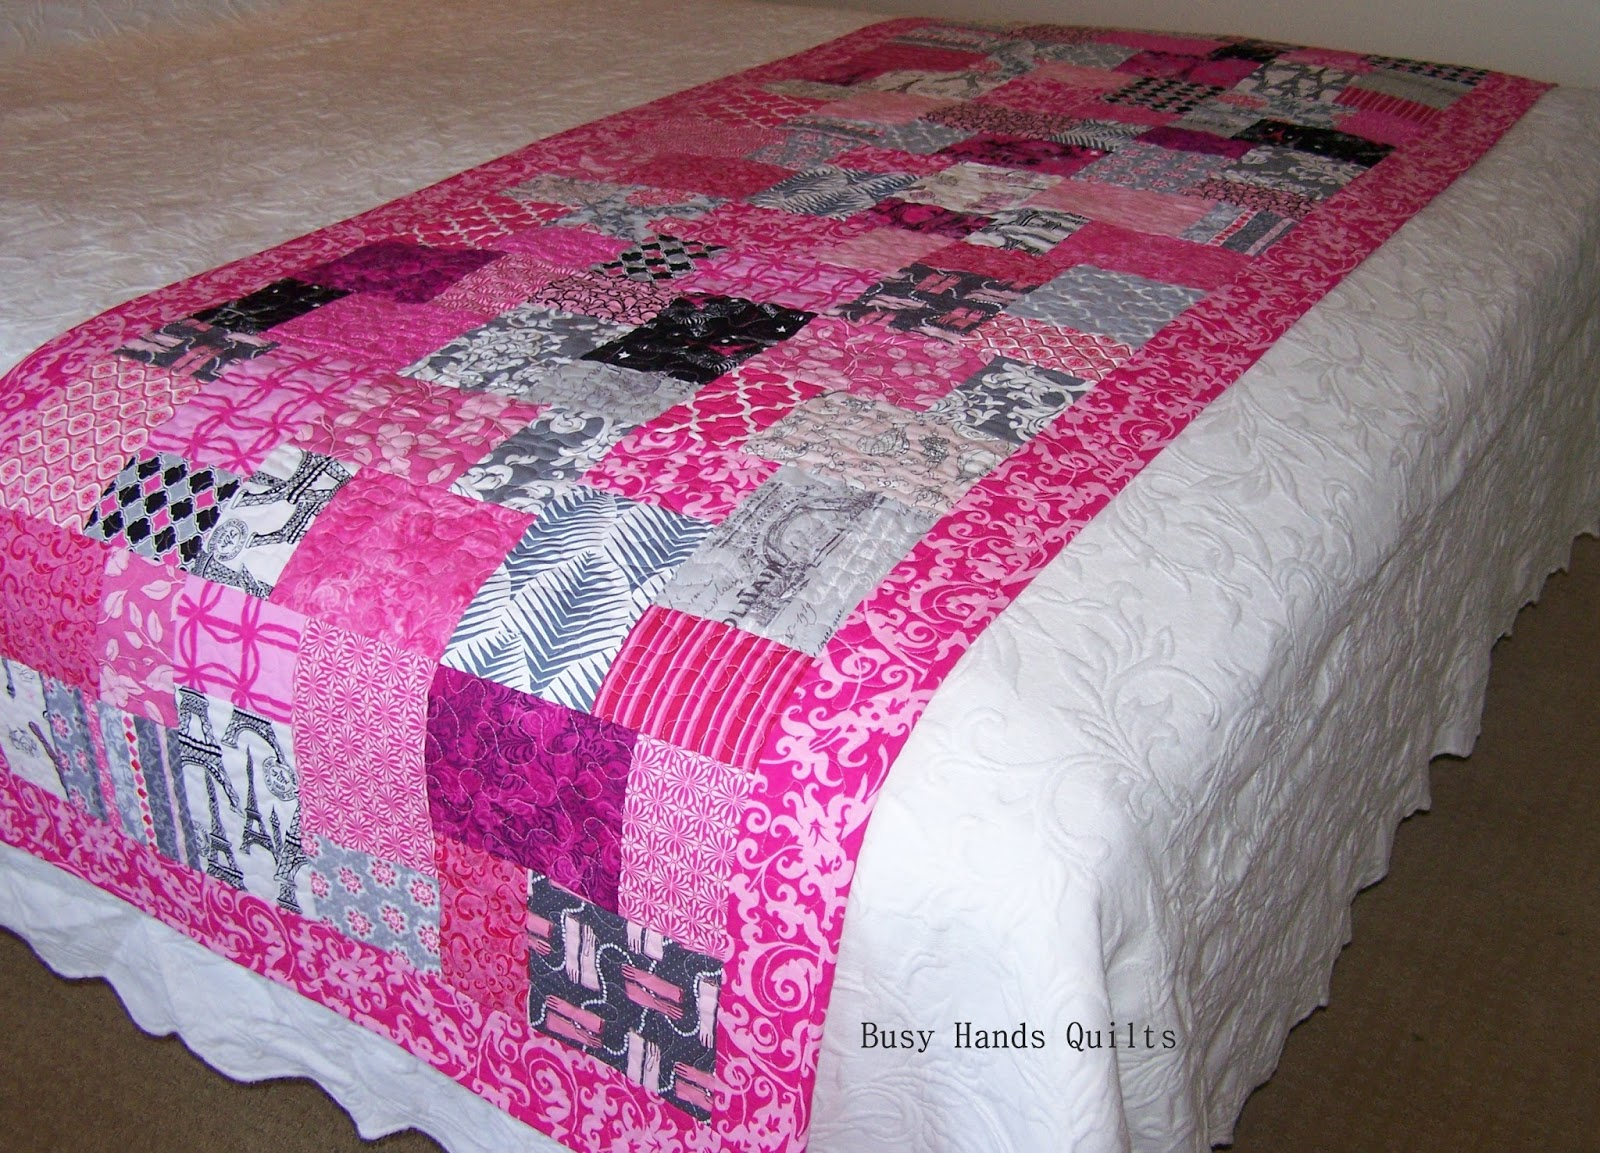 Amazon Bedroom Sets Busy Hands Quilts Custom Paris France Eiffel Tower Themed